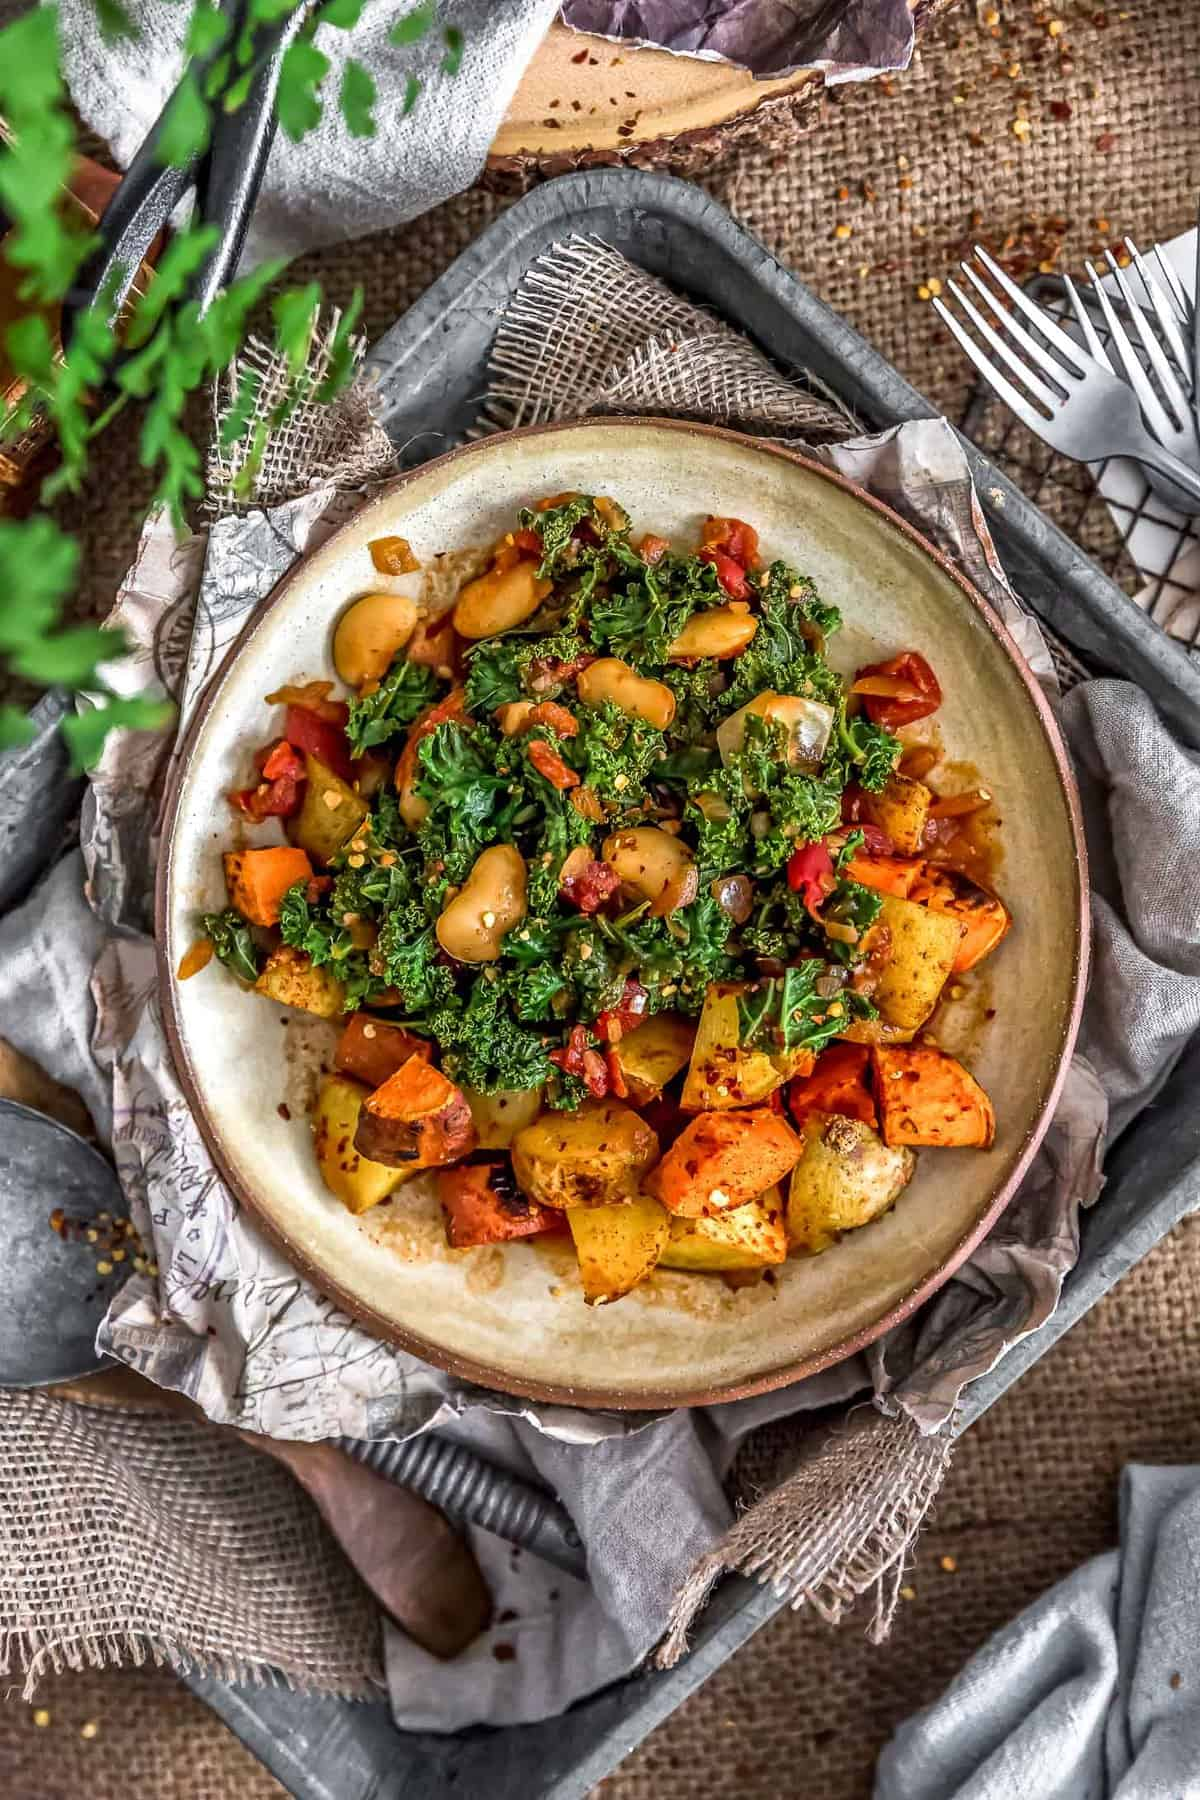 Plated Southern Kale and Butter Beans with Potatoes